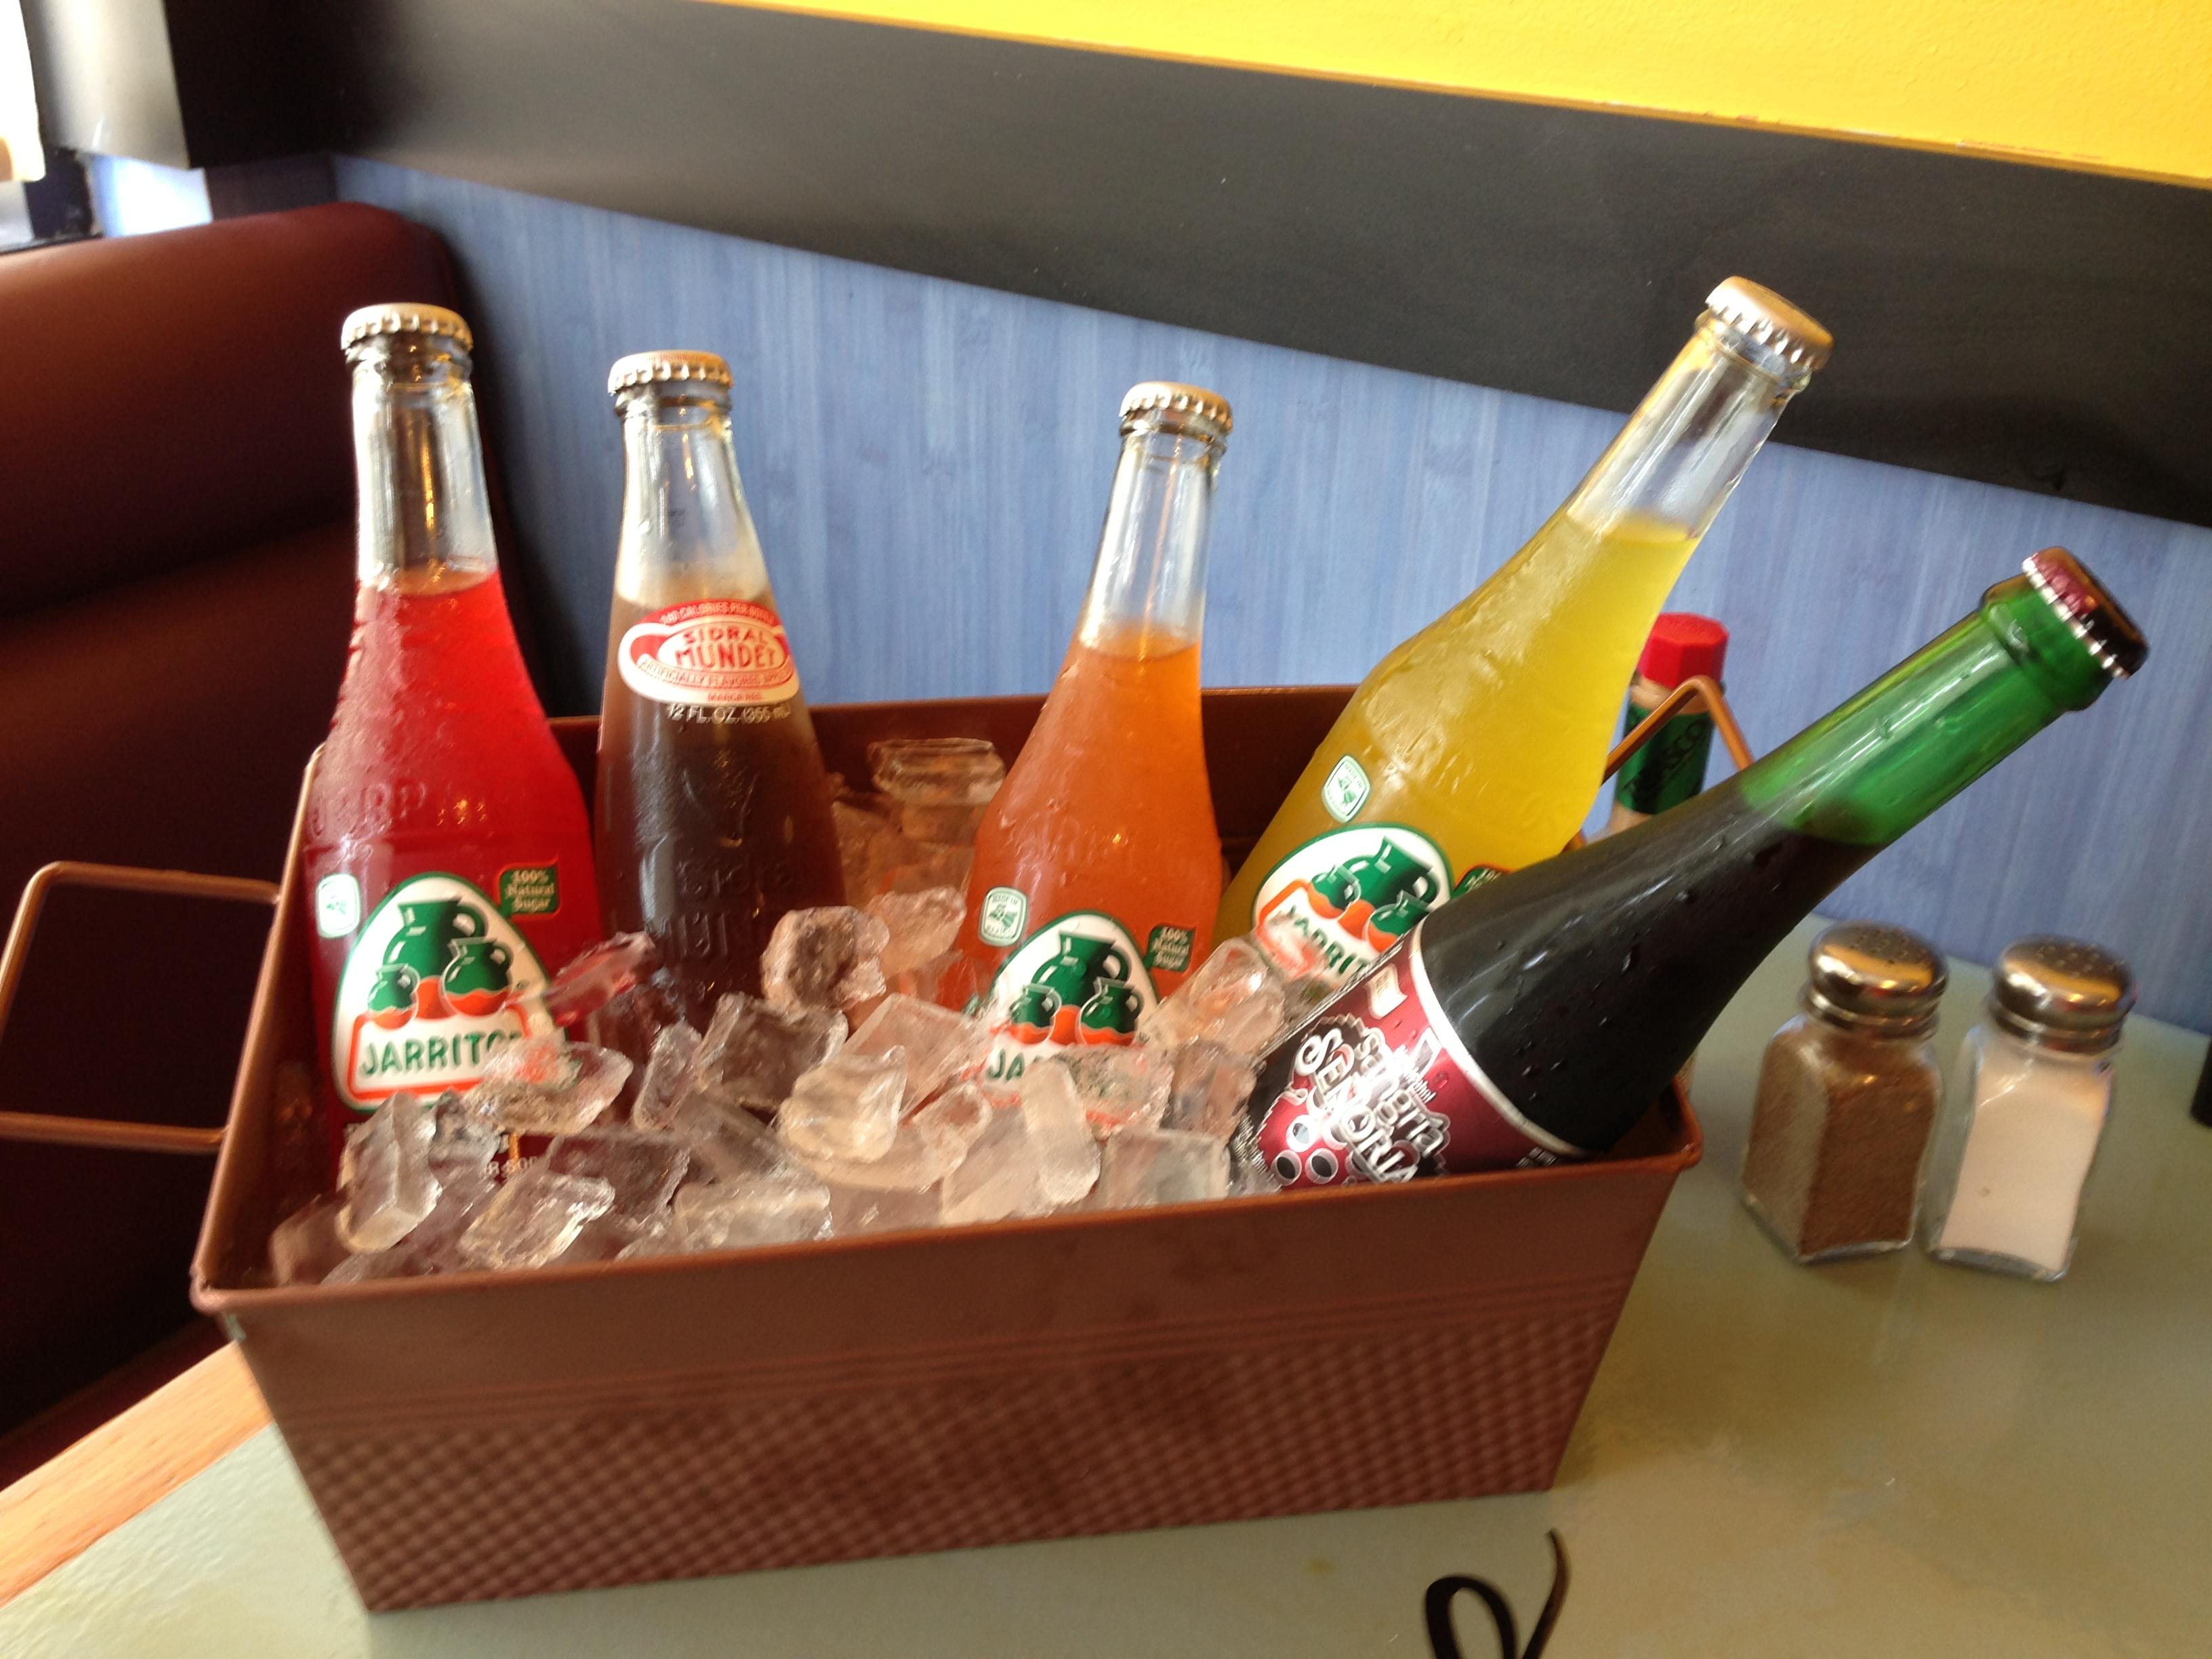 Special Jarritos Mexican Soft Drinks (5)